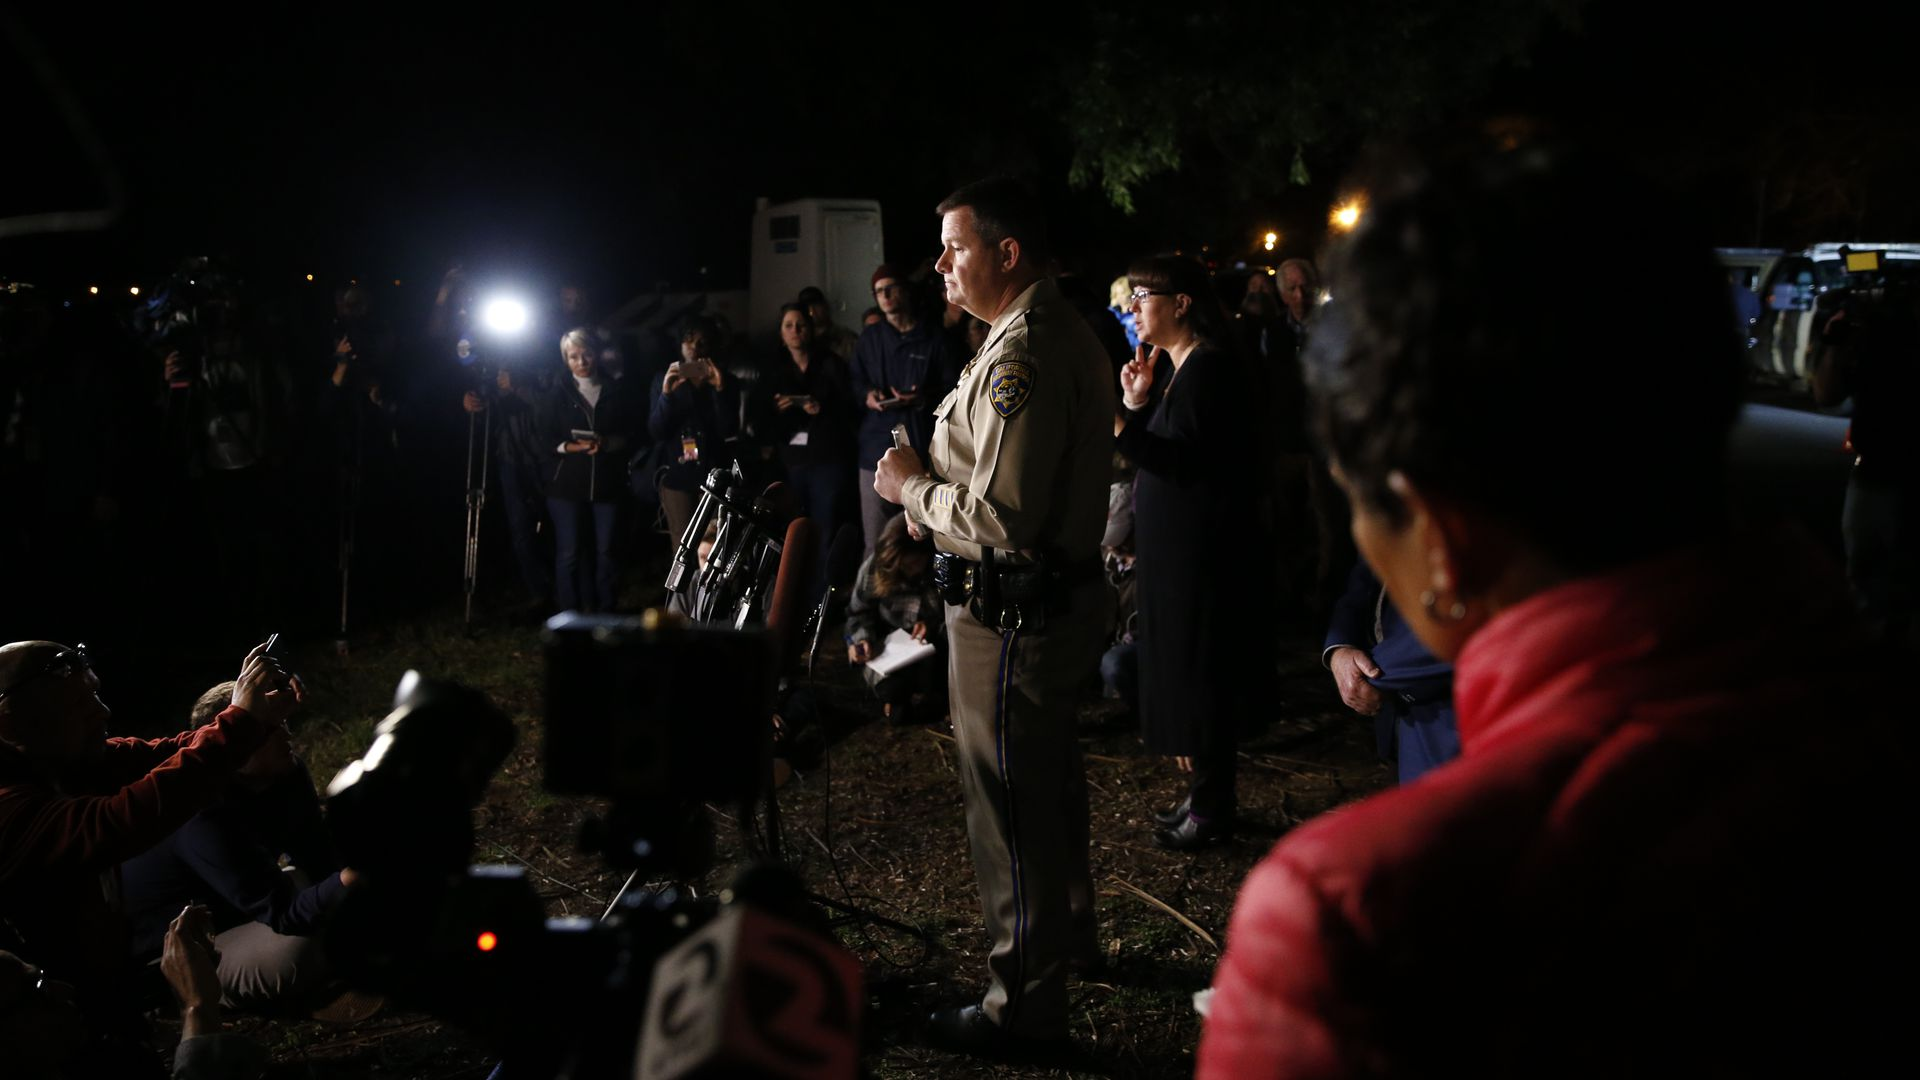 Chris Childs, assistant chief of the California Highway Patrol, speaks at a press conference after an active shooter turned hostage situation at the Veterans Home of California.